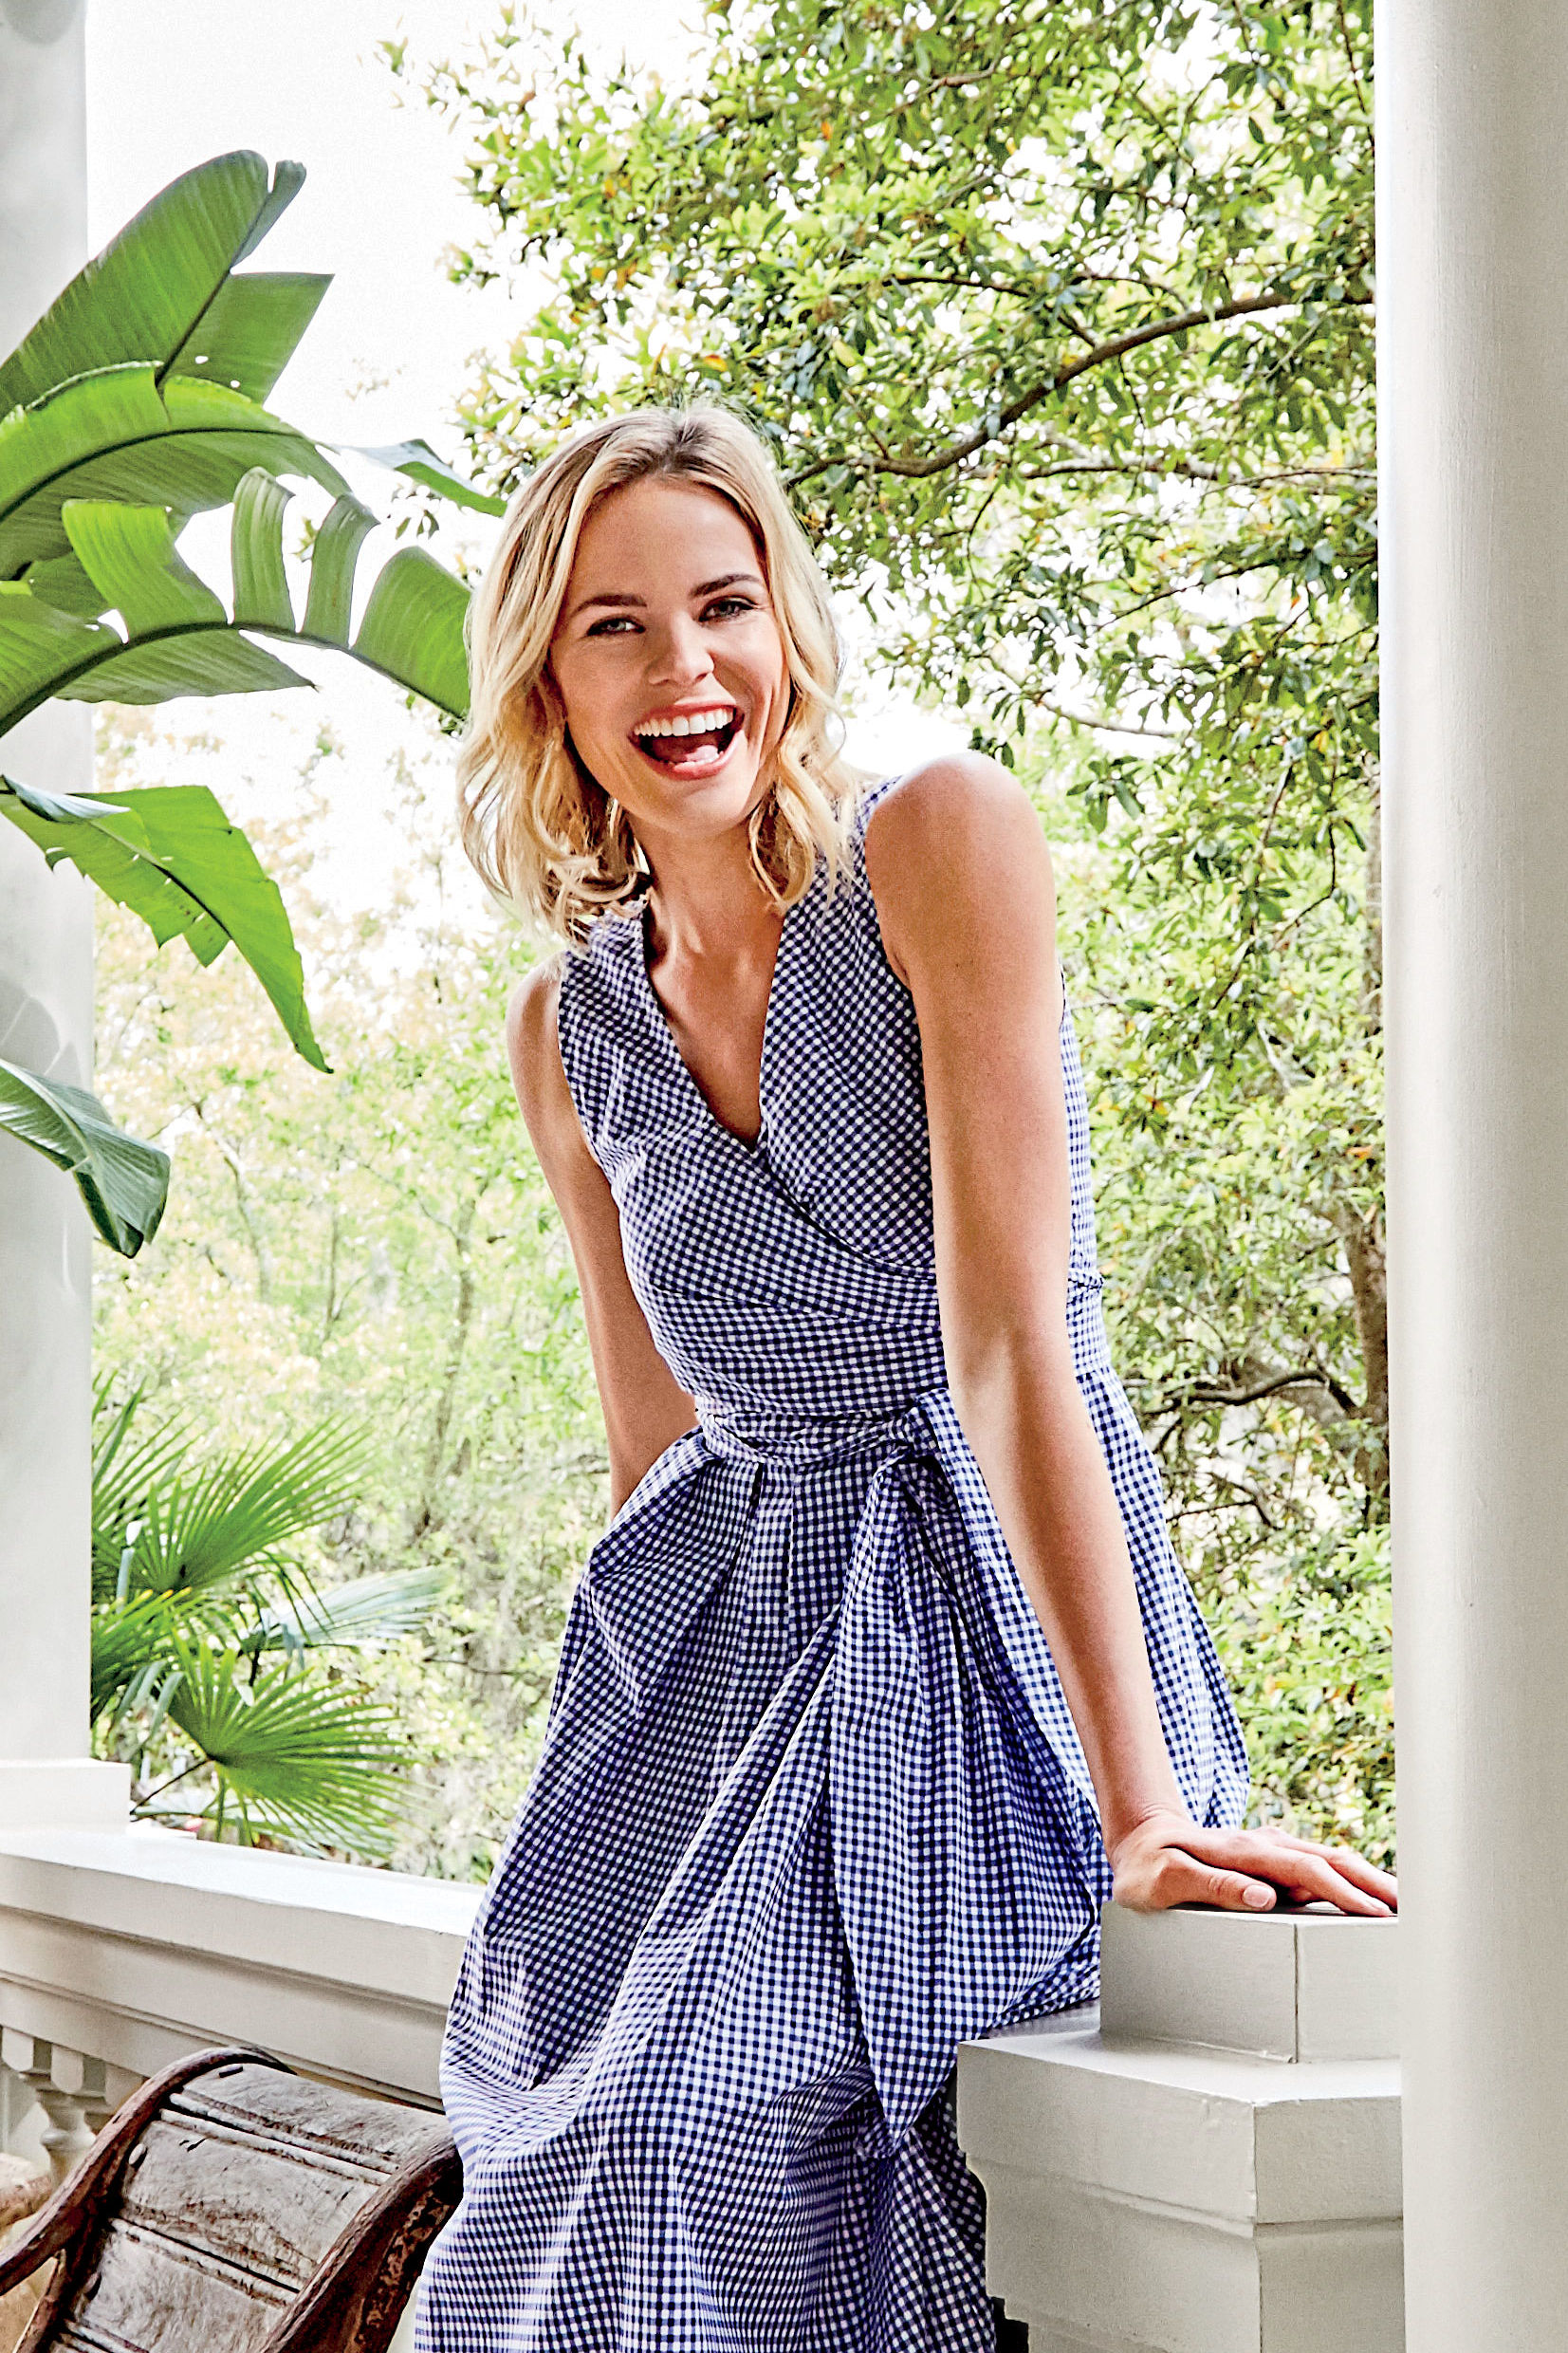 Here's Why Gingham Is Your Summer Go-To